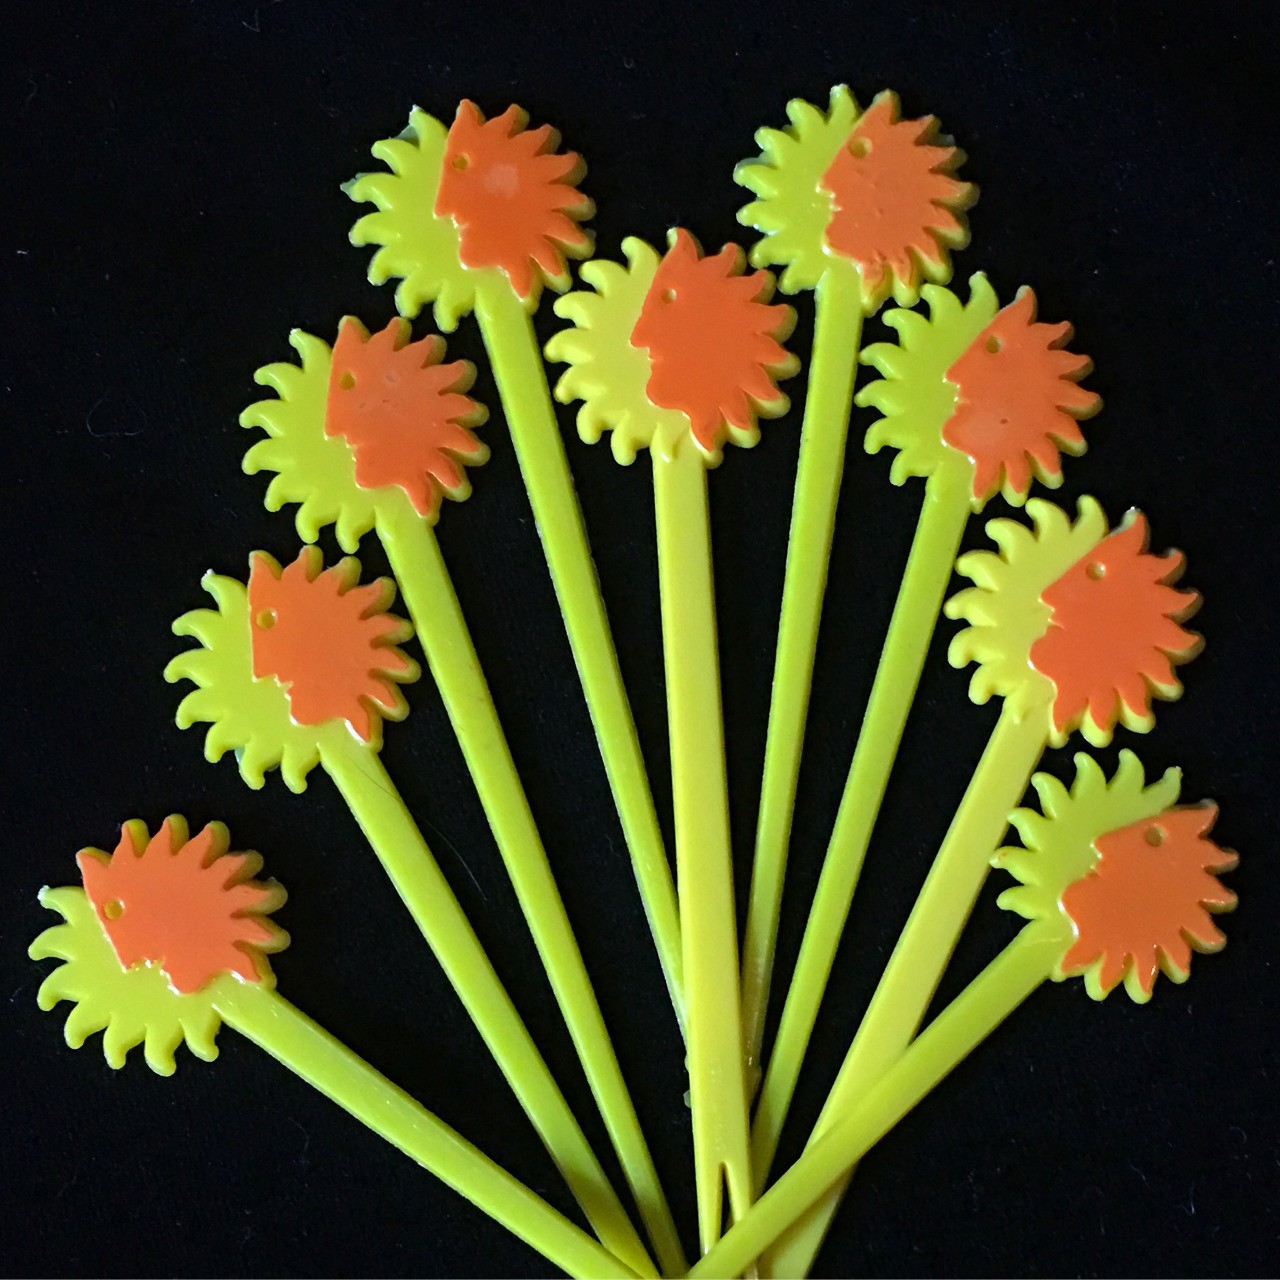 National Airlines Swizzle Sticks